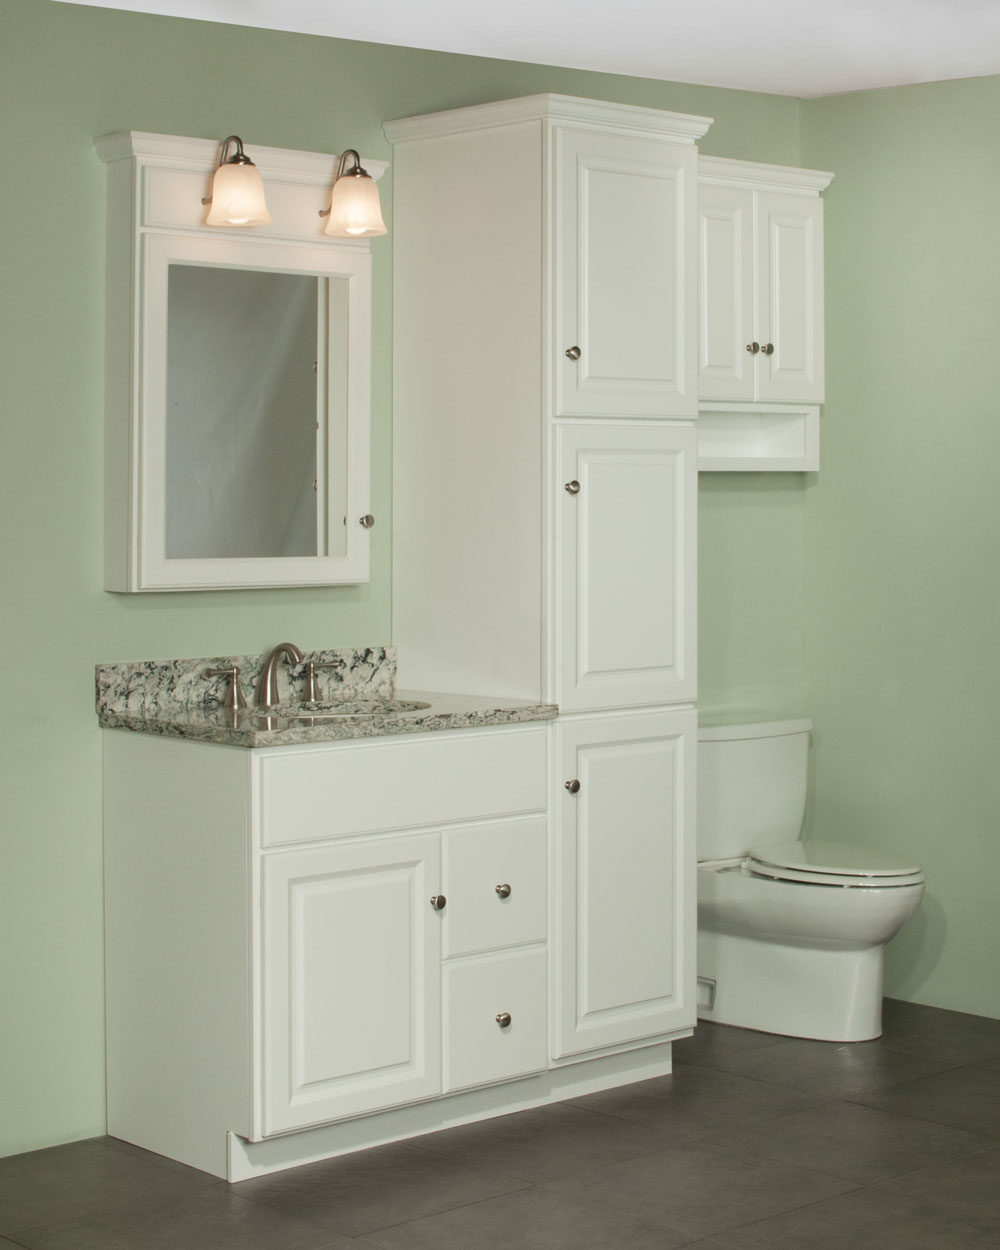 Lowes Cabinets And Lighting Gallery